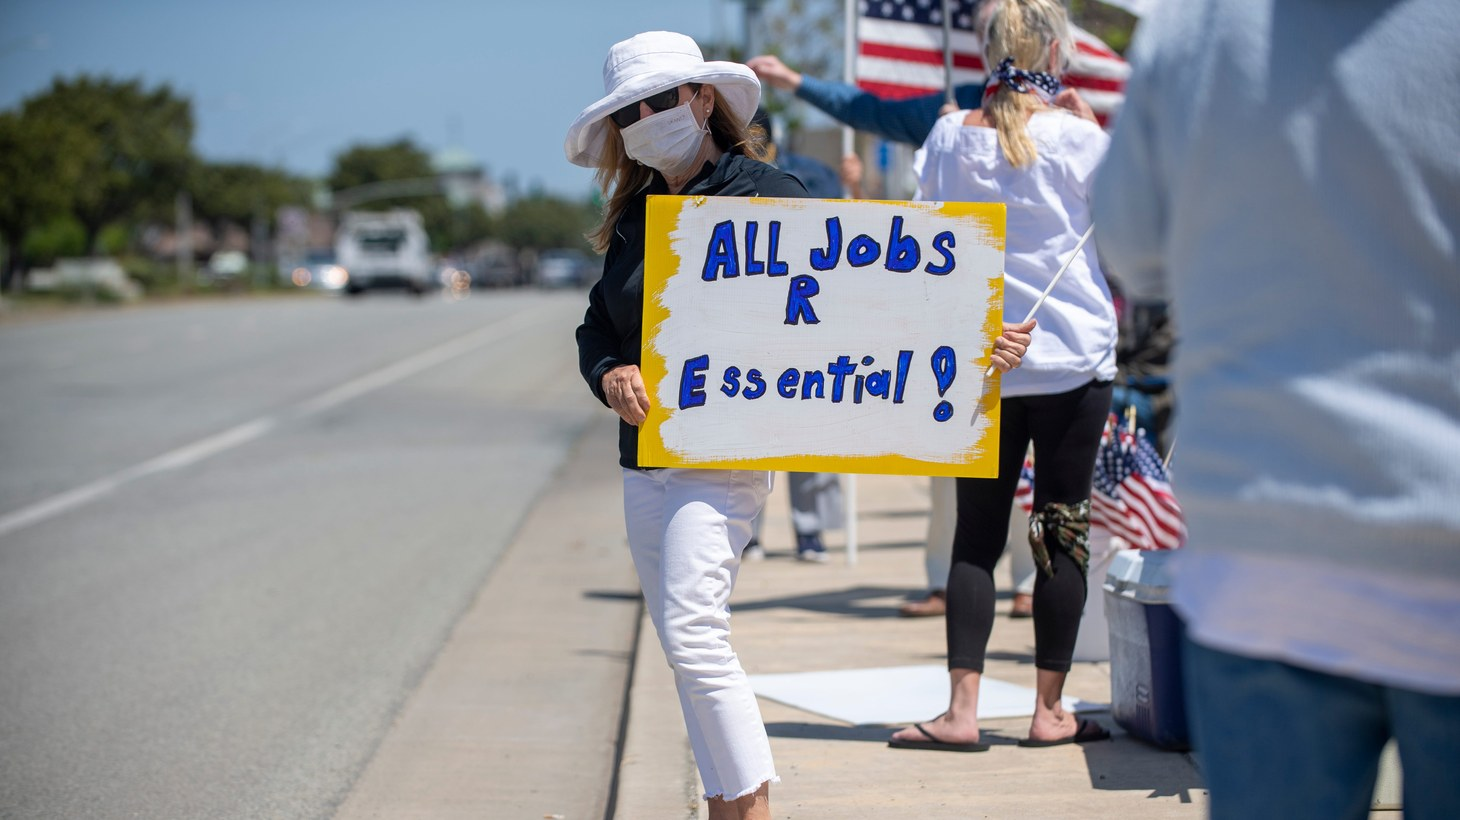 People in Monterey County protest California's stay-at-home orders, expressing their desire to reopen the economy. May 1, 2020.